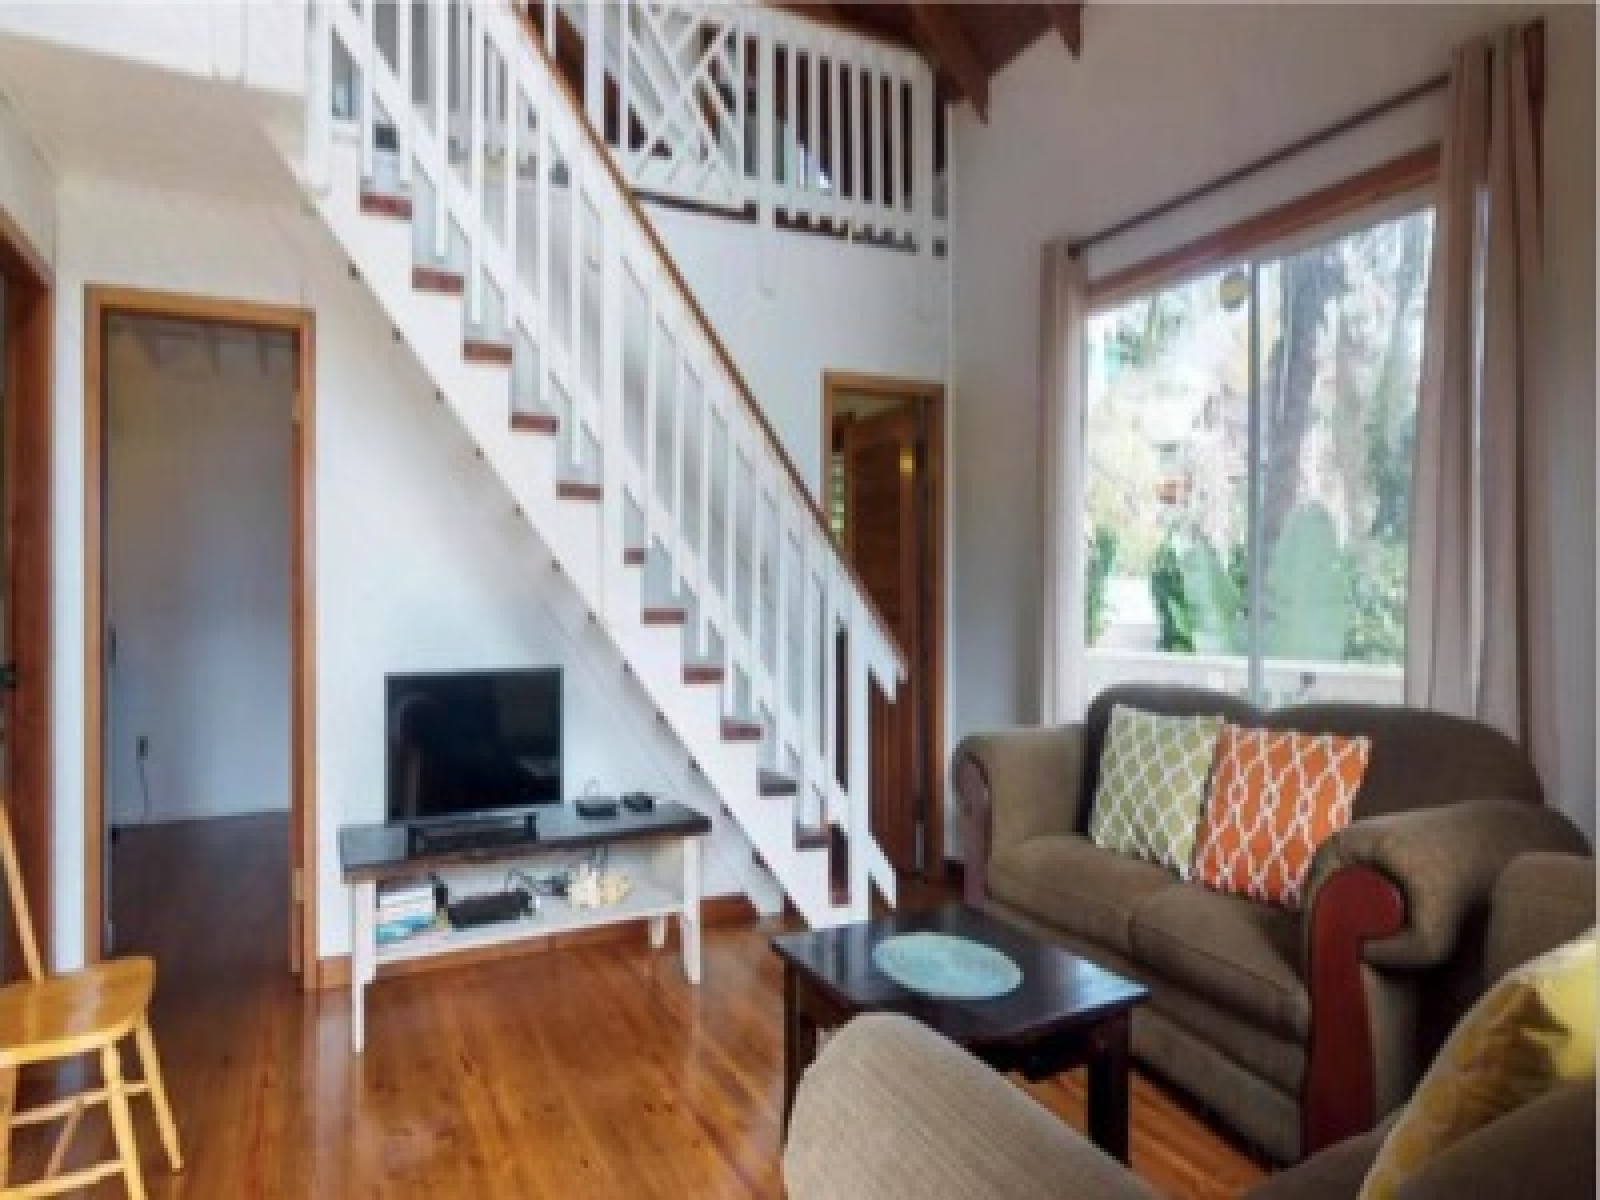 Comfortable lounge area with stairs leading to the spacious loft area.